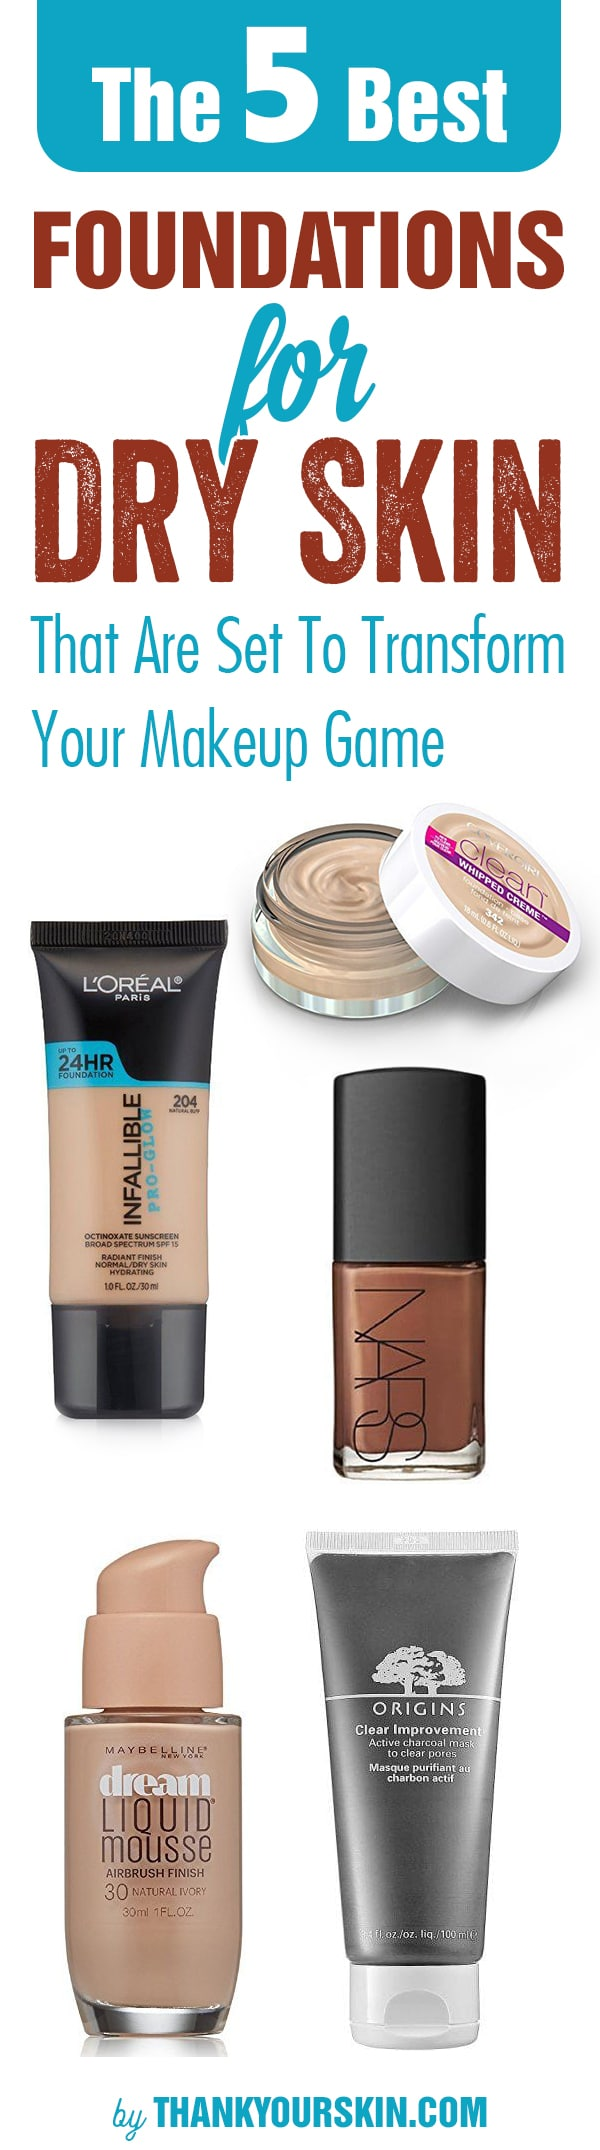 The-5-Best-Foundations-for-Dry-Skin